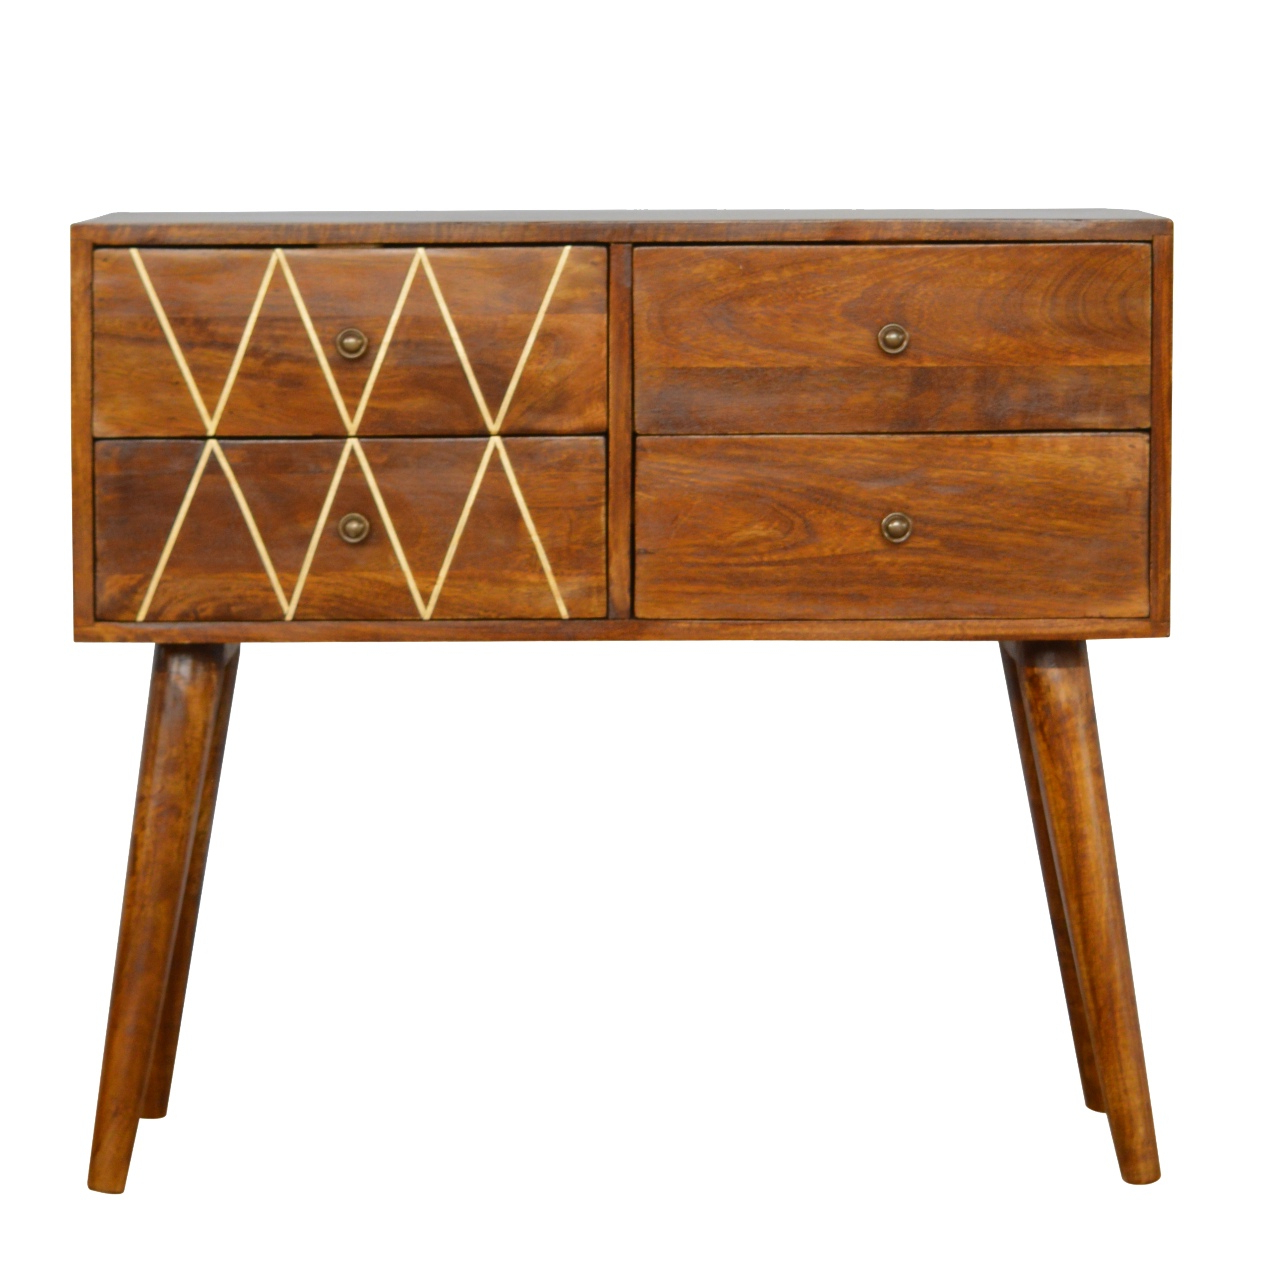 Orange Inlay Console Tables In Most Recently Released 4 Drawer Nordic Style Console Table With Brass Inlay – Oh Me Oh My (Gallery 8 of 20)